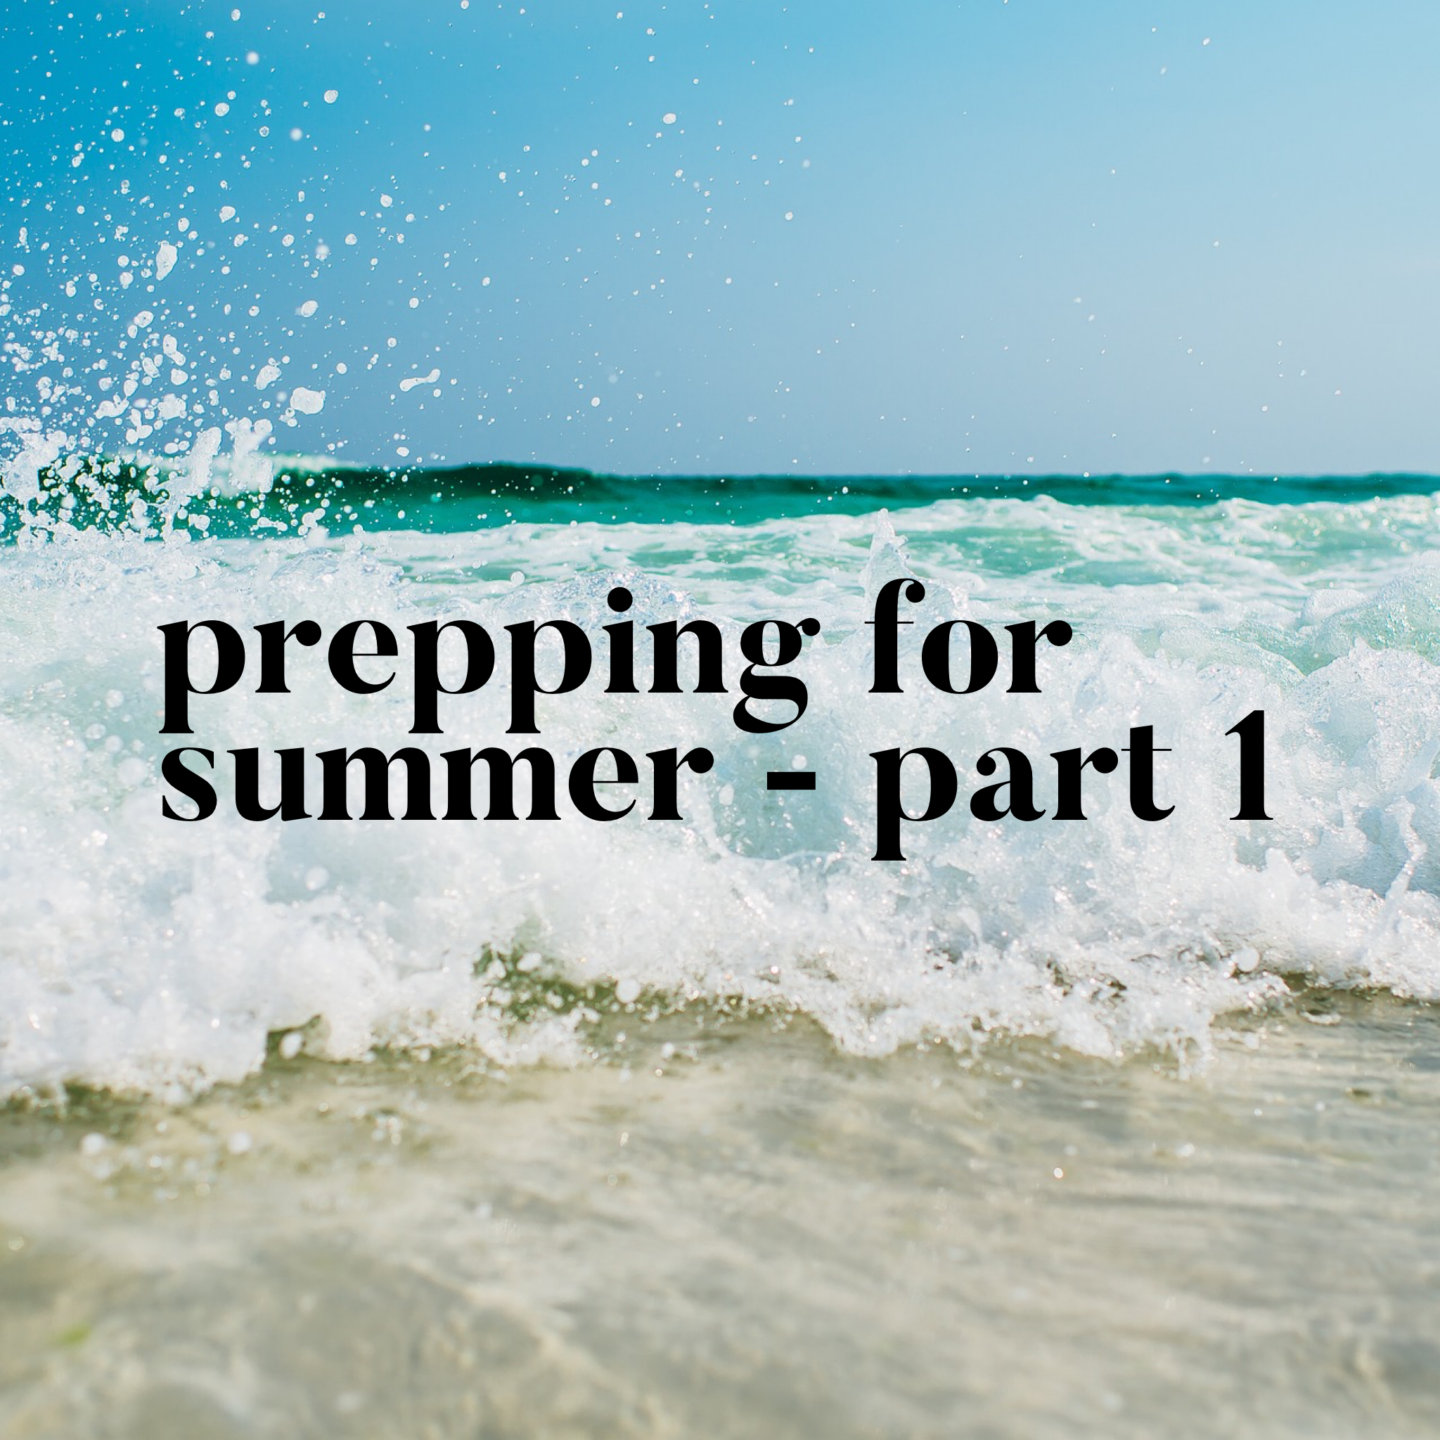 Prepping for Summer – Part 1